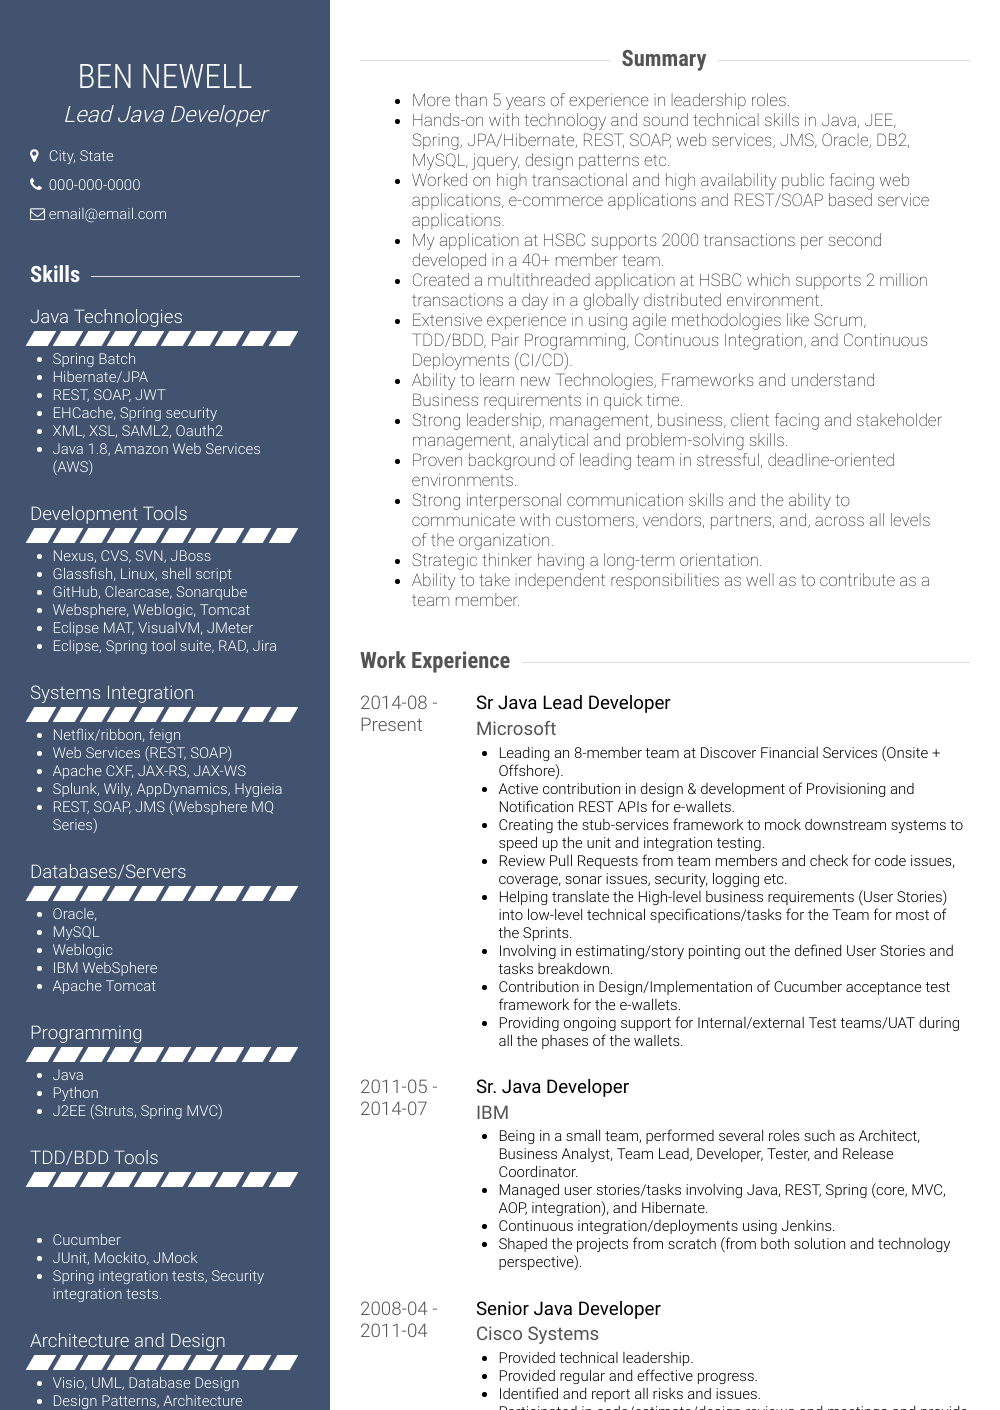 Lead Developer - Resume Samples & Templates | VisualCV